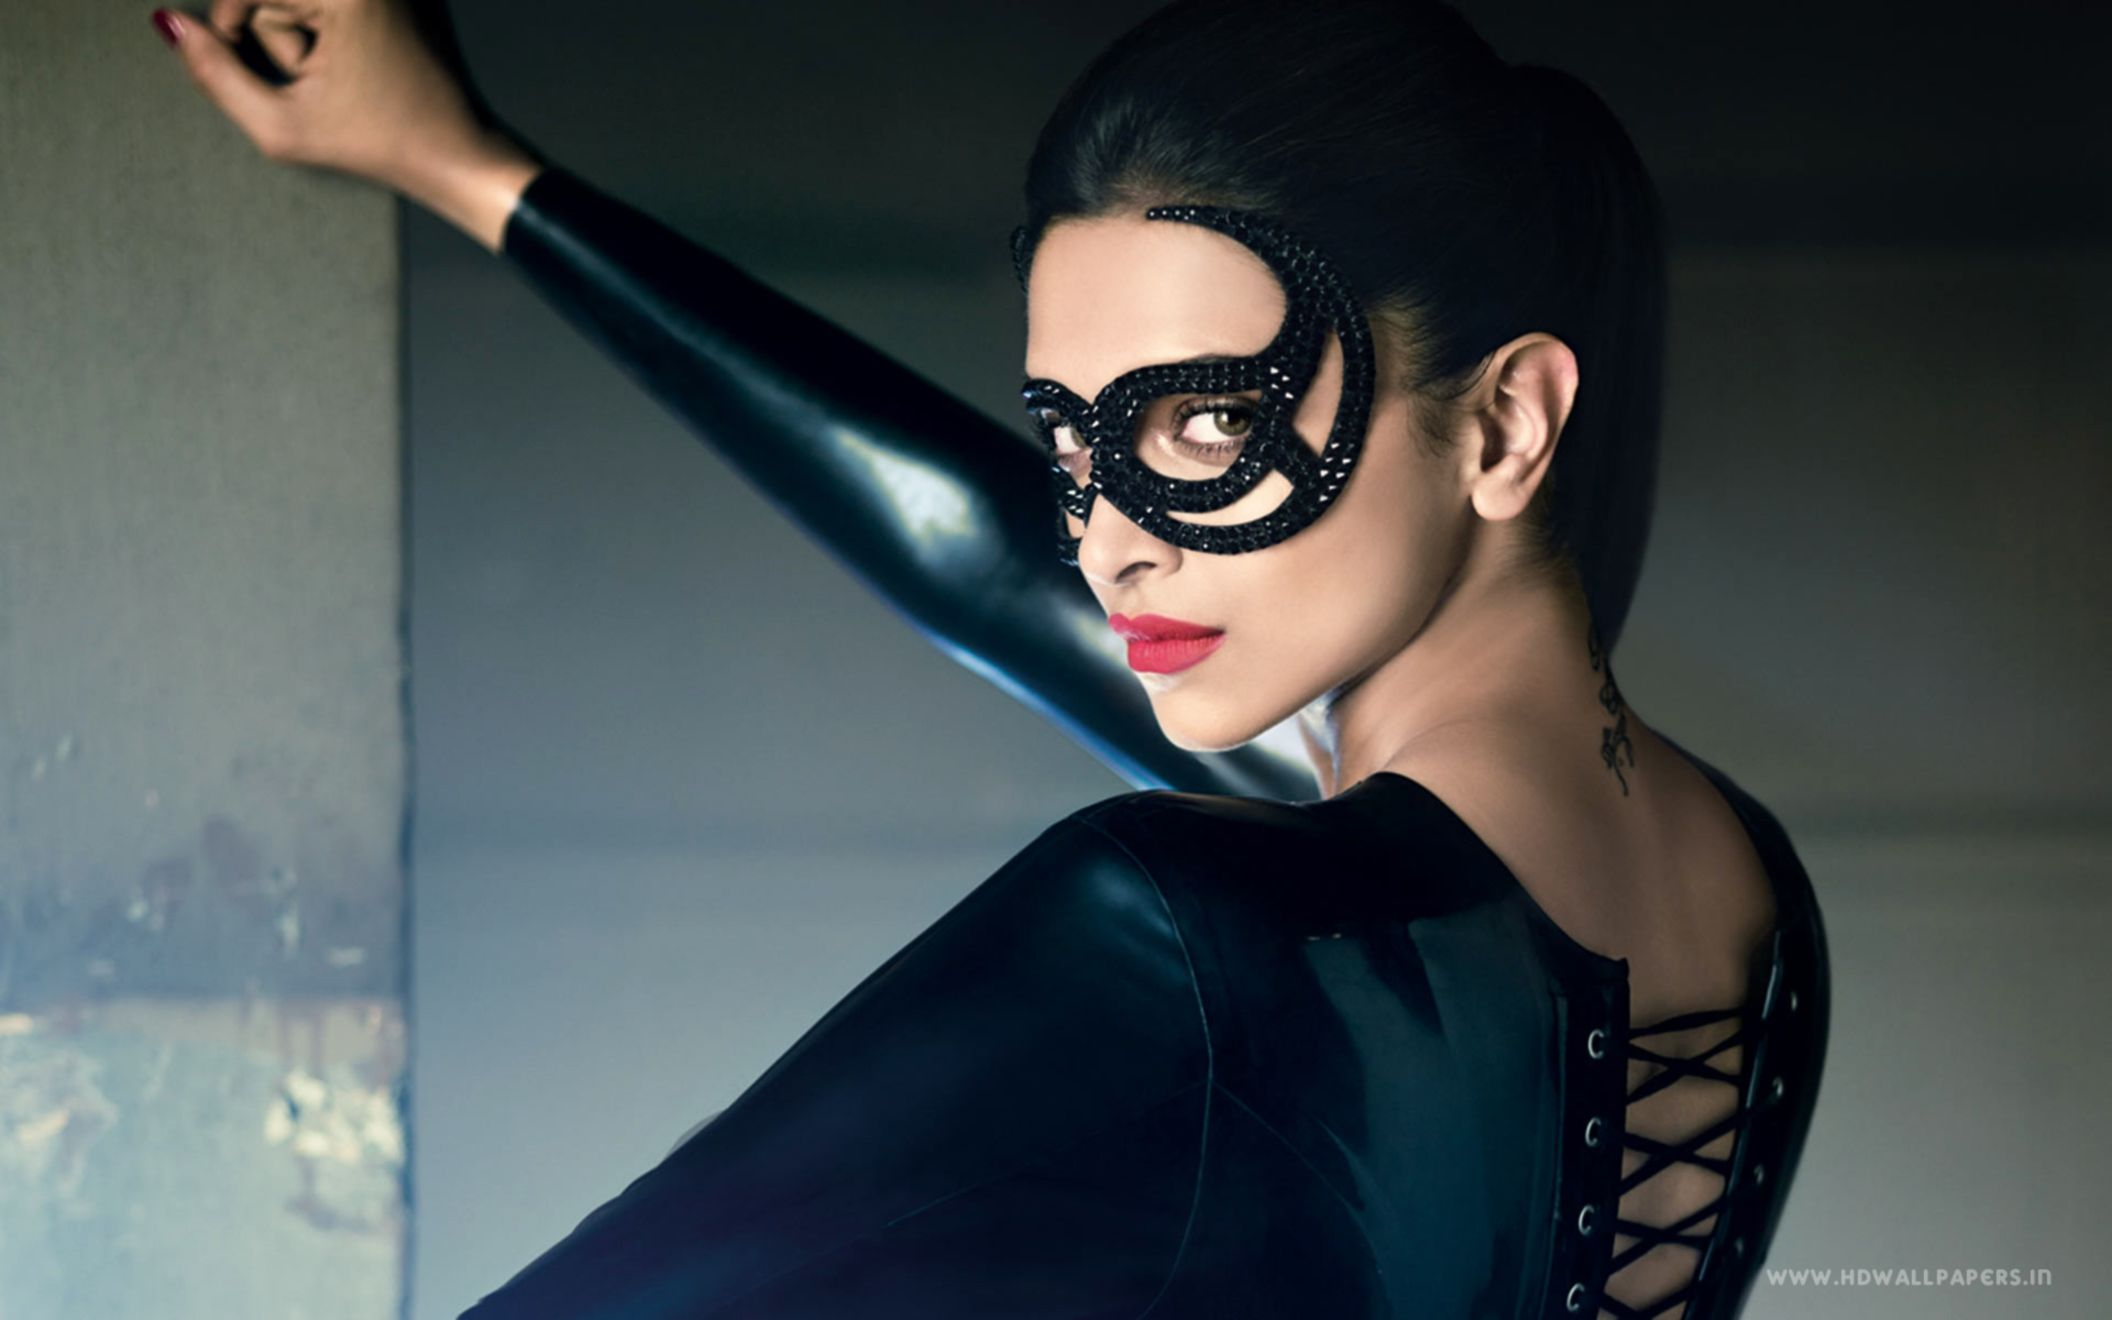 Download free HD Deepika Padukone Gq Magazine Wide Wallpaper, image